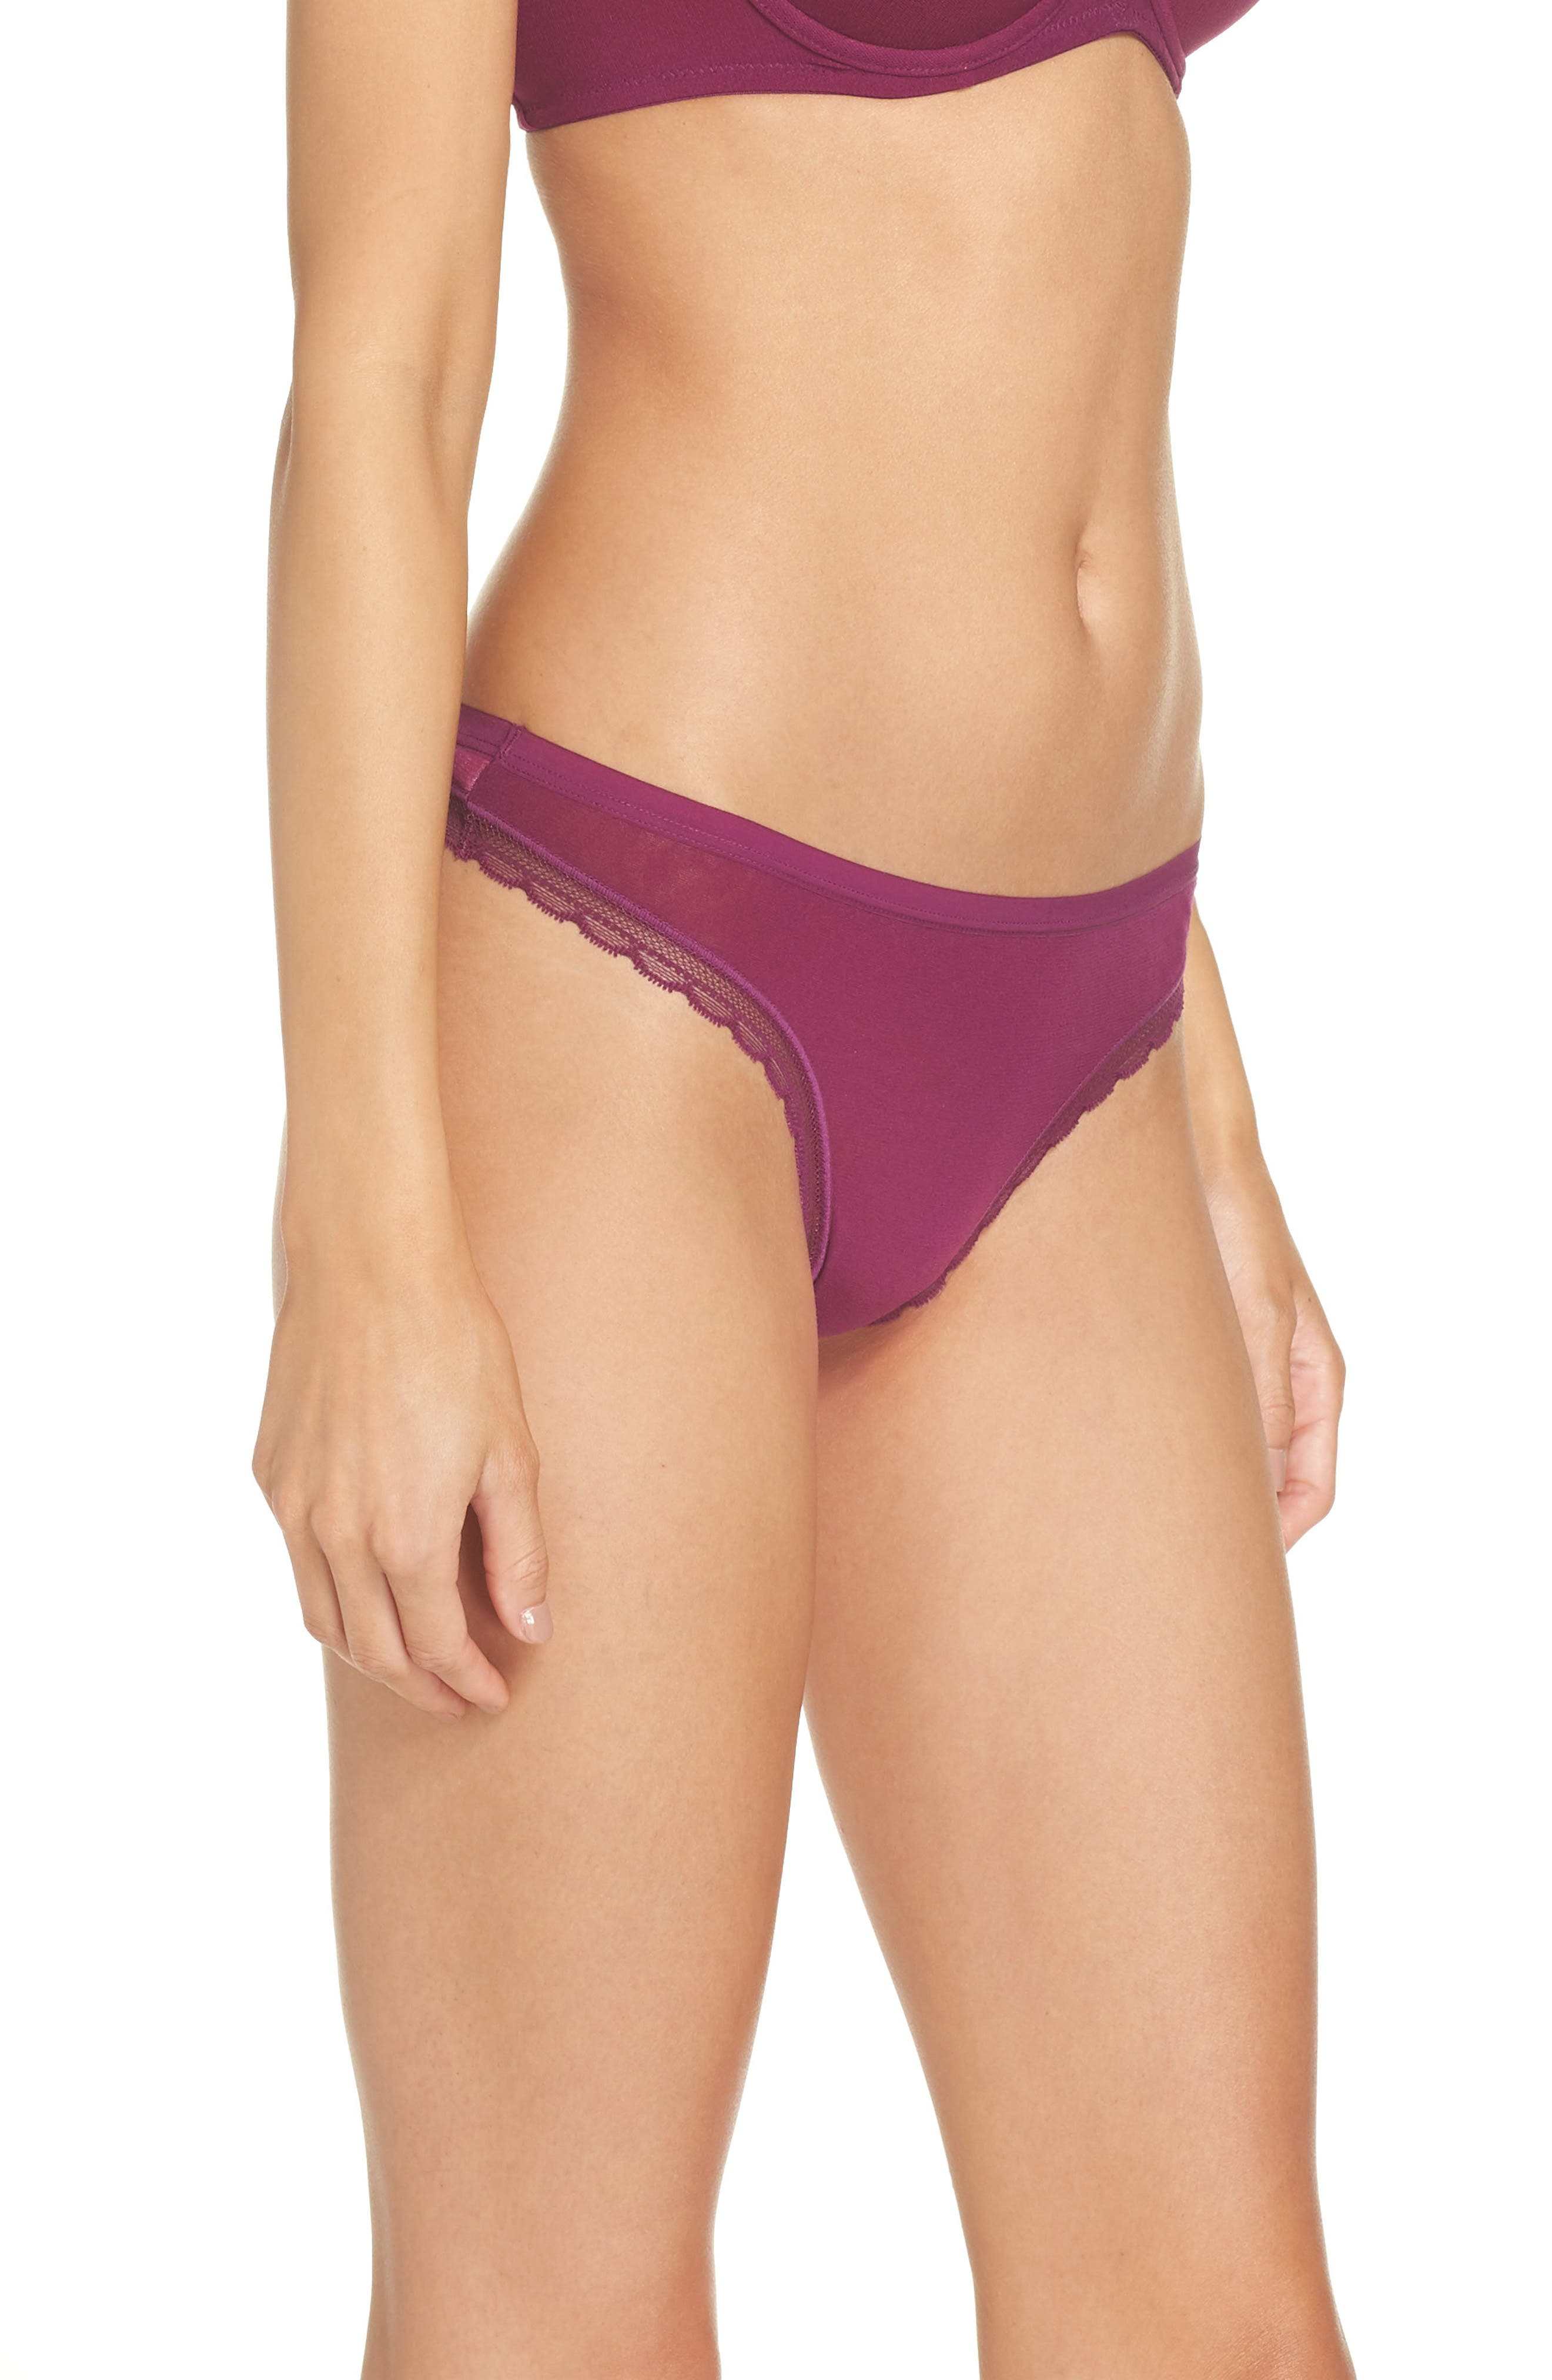 Hip G Thong,                             Alternate thumbnail 3, color,                             PLUM WINE